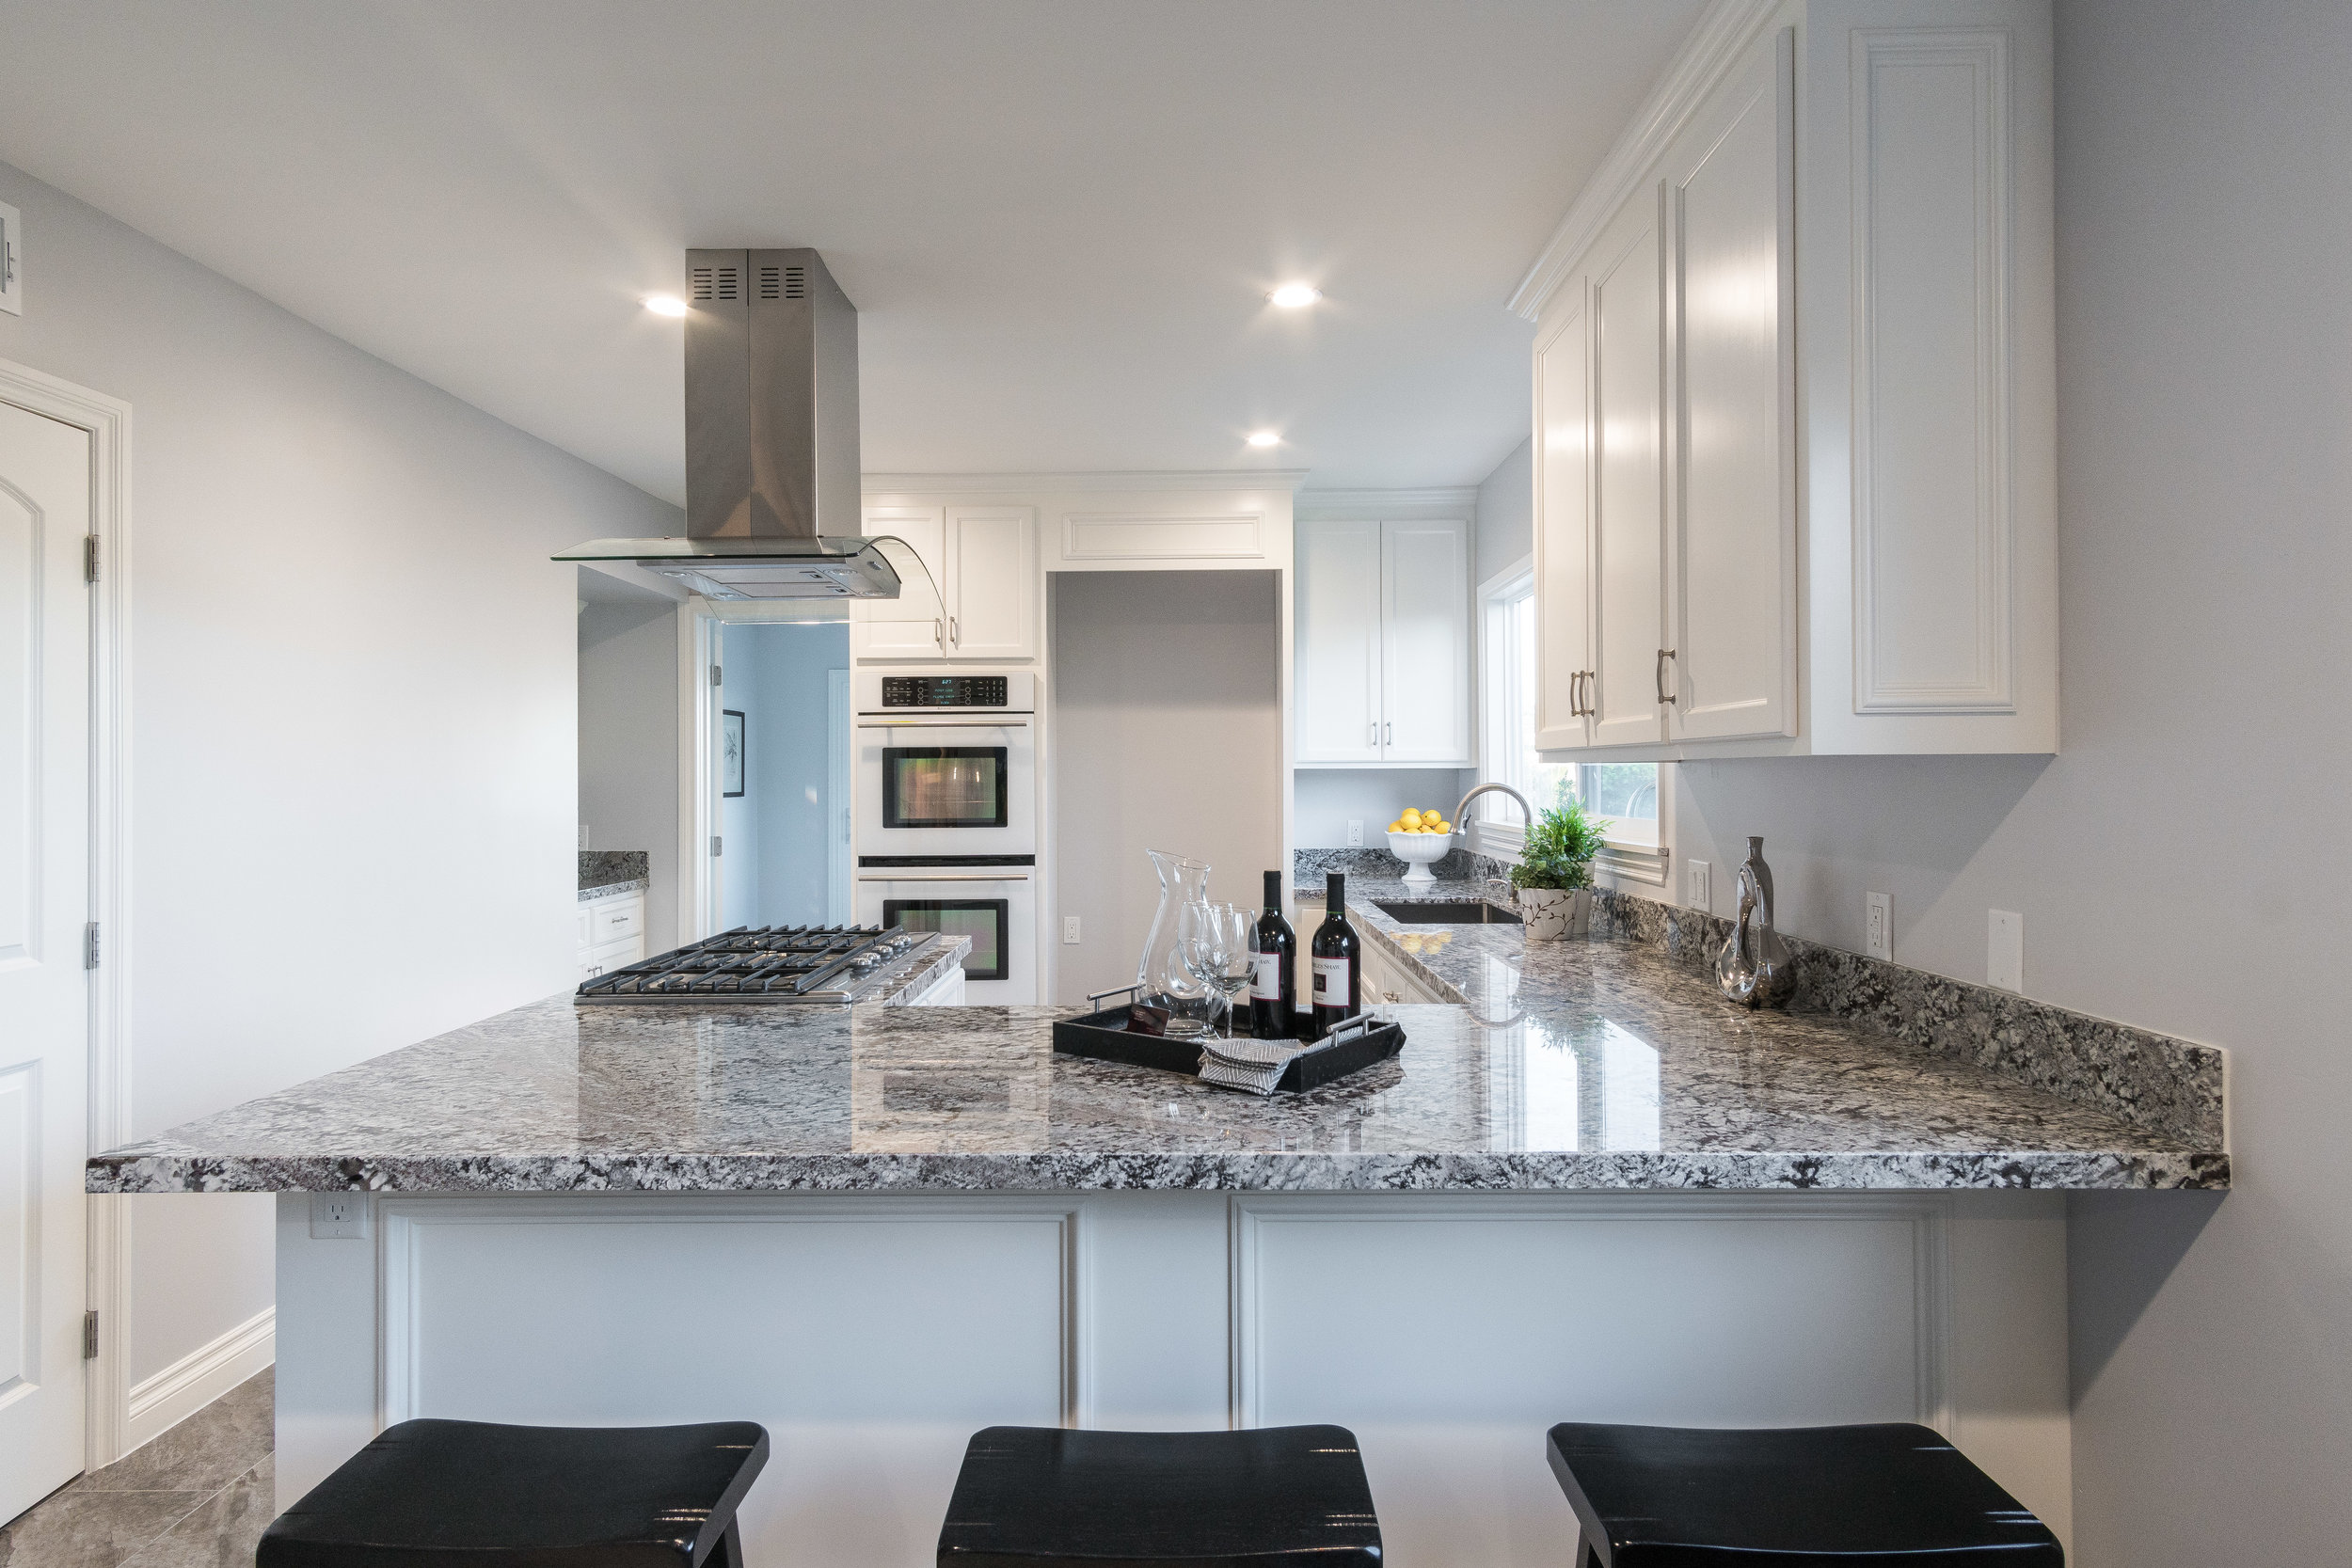 Delivered photo of the kitchen ©Ryan Carr - Legacy Listing Photography - 2017